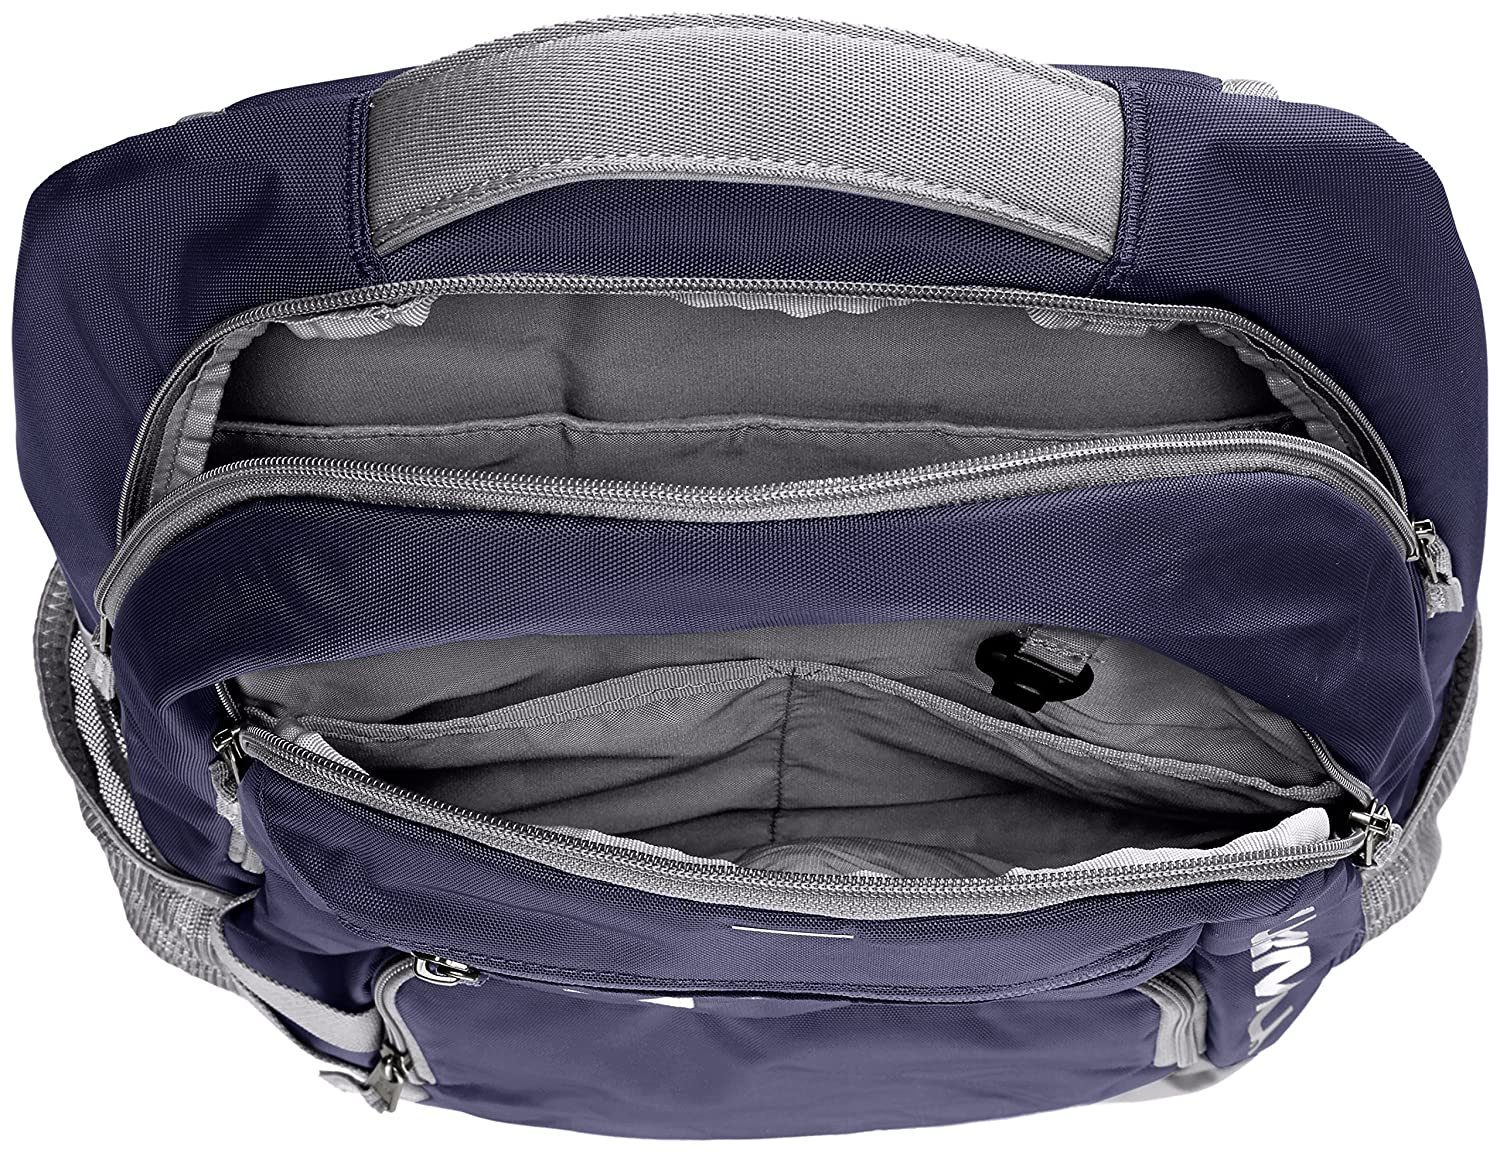 400 Under Armour Storm Hustle II Backpack Royal //Silver One Size Under Armour Bags 1263964